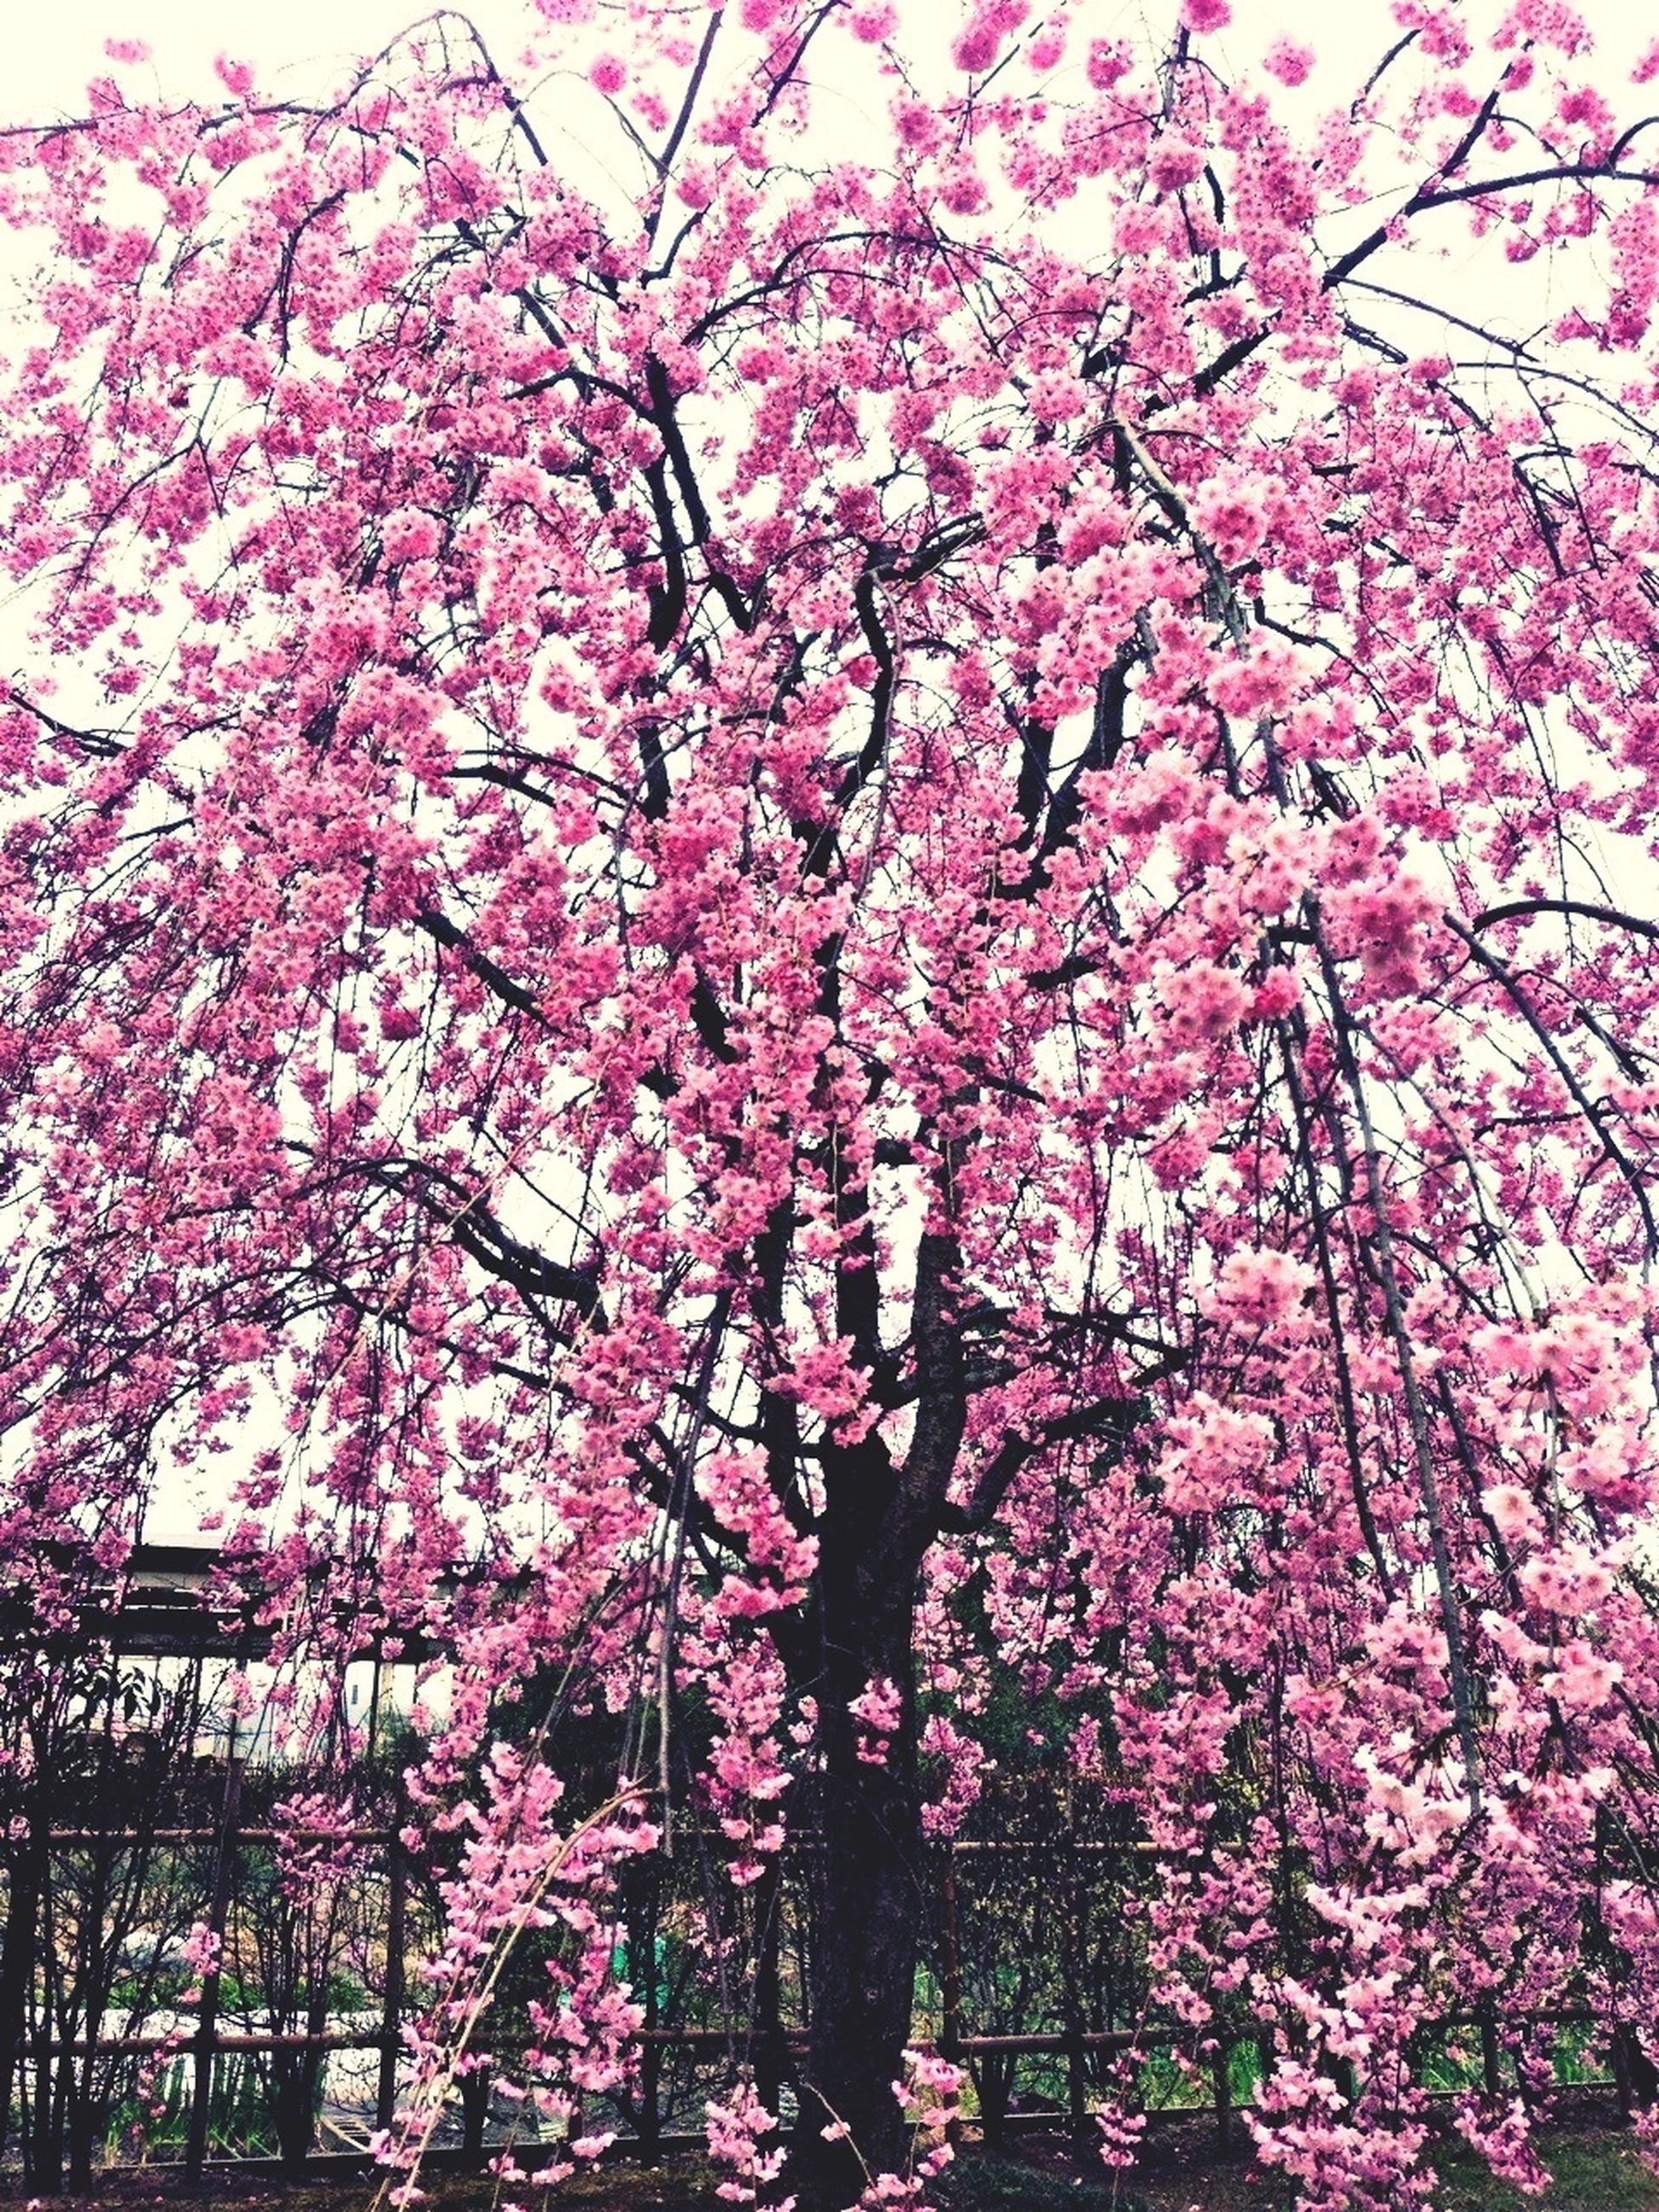 flower, tree, freshness, pink color, branch, growth, low angle view, beauty in nature, fragility, nature, cherry blossom, blossom, cherry tree, blooming, in bloom, pink, springtime, day, outdoors, clear sky